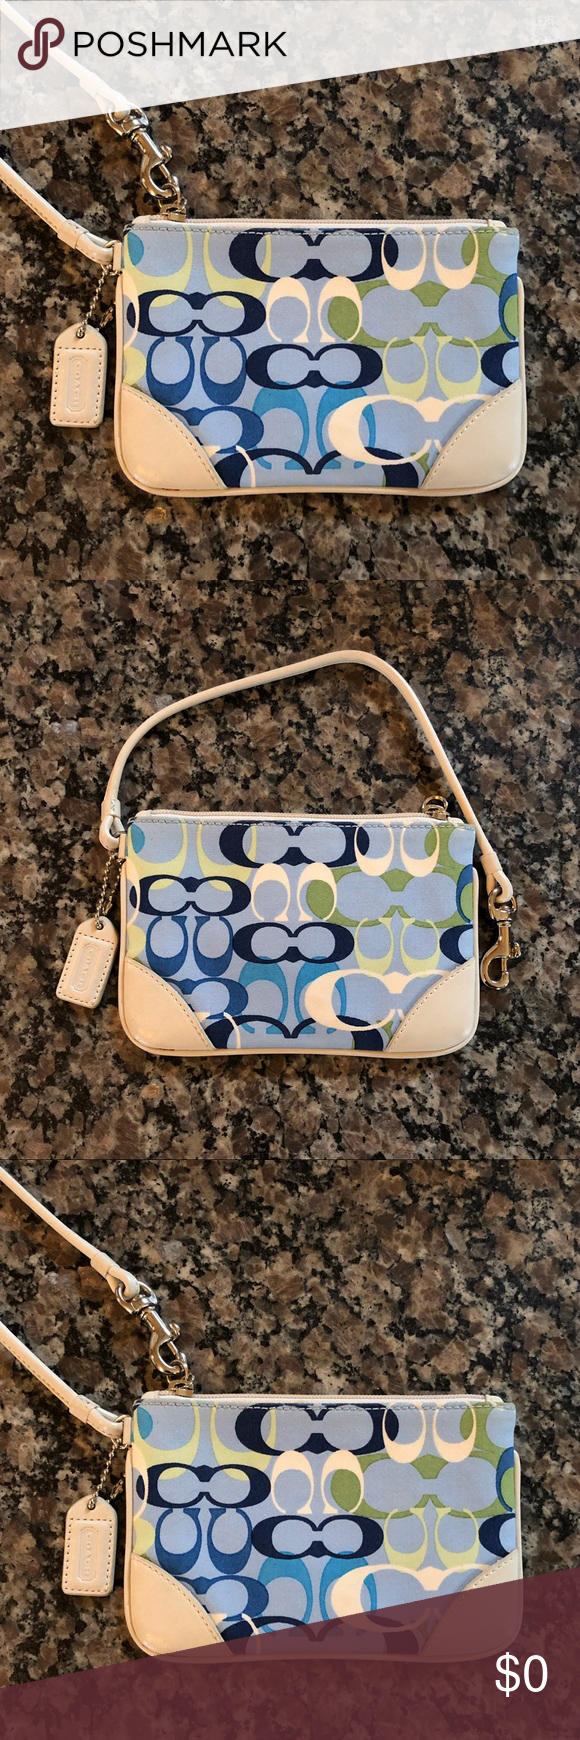 e7da92a7e53 ... shopping coach unique limited edition wristlet. gorgeous guaranteed  authentic or your money is refunded in